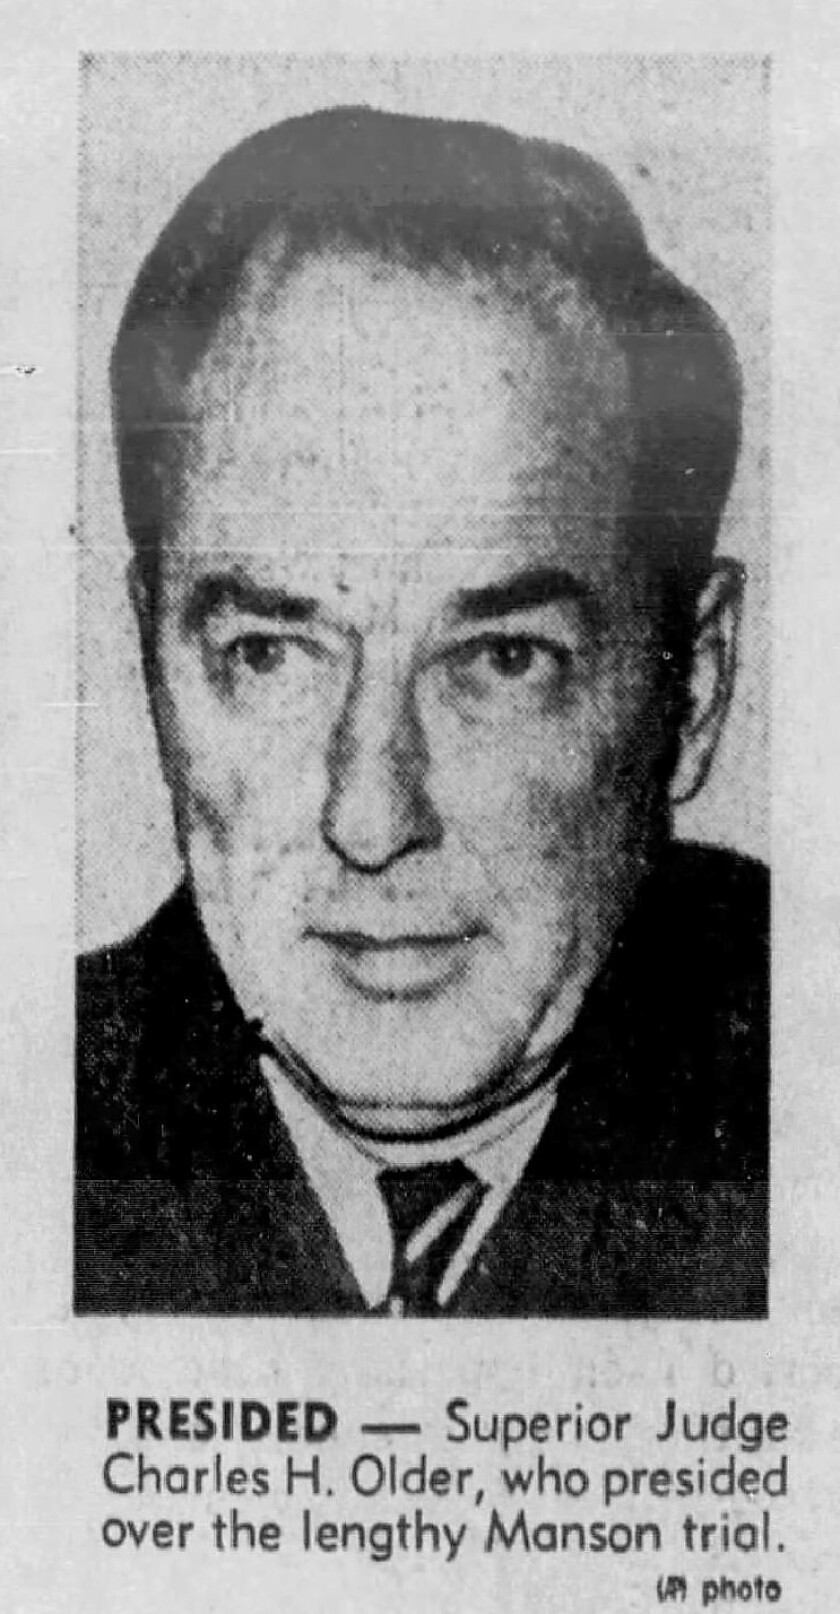 Superior Judge Charles H. Older, who presided over the lengthy Manson trial